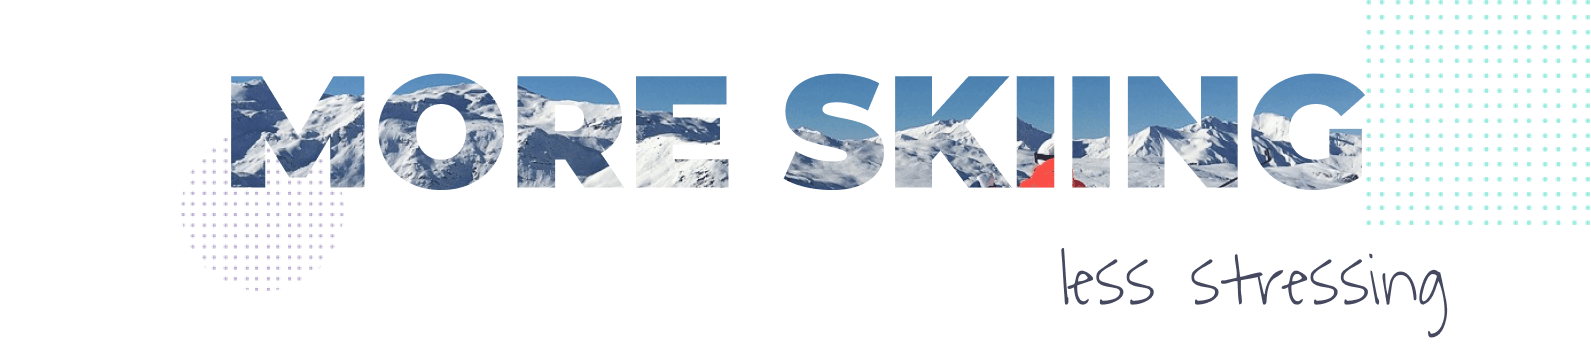 An illustration of mountains with the words More Skiing Less Stressing